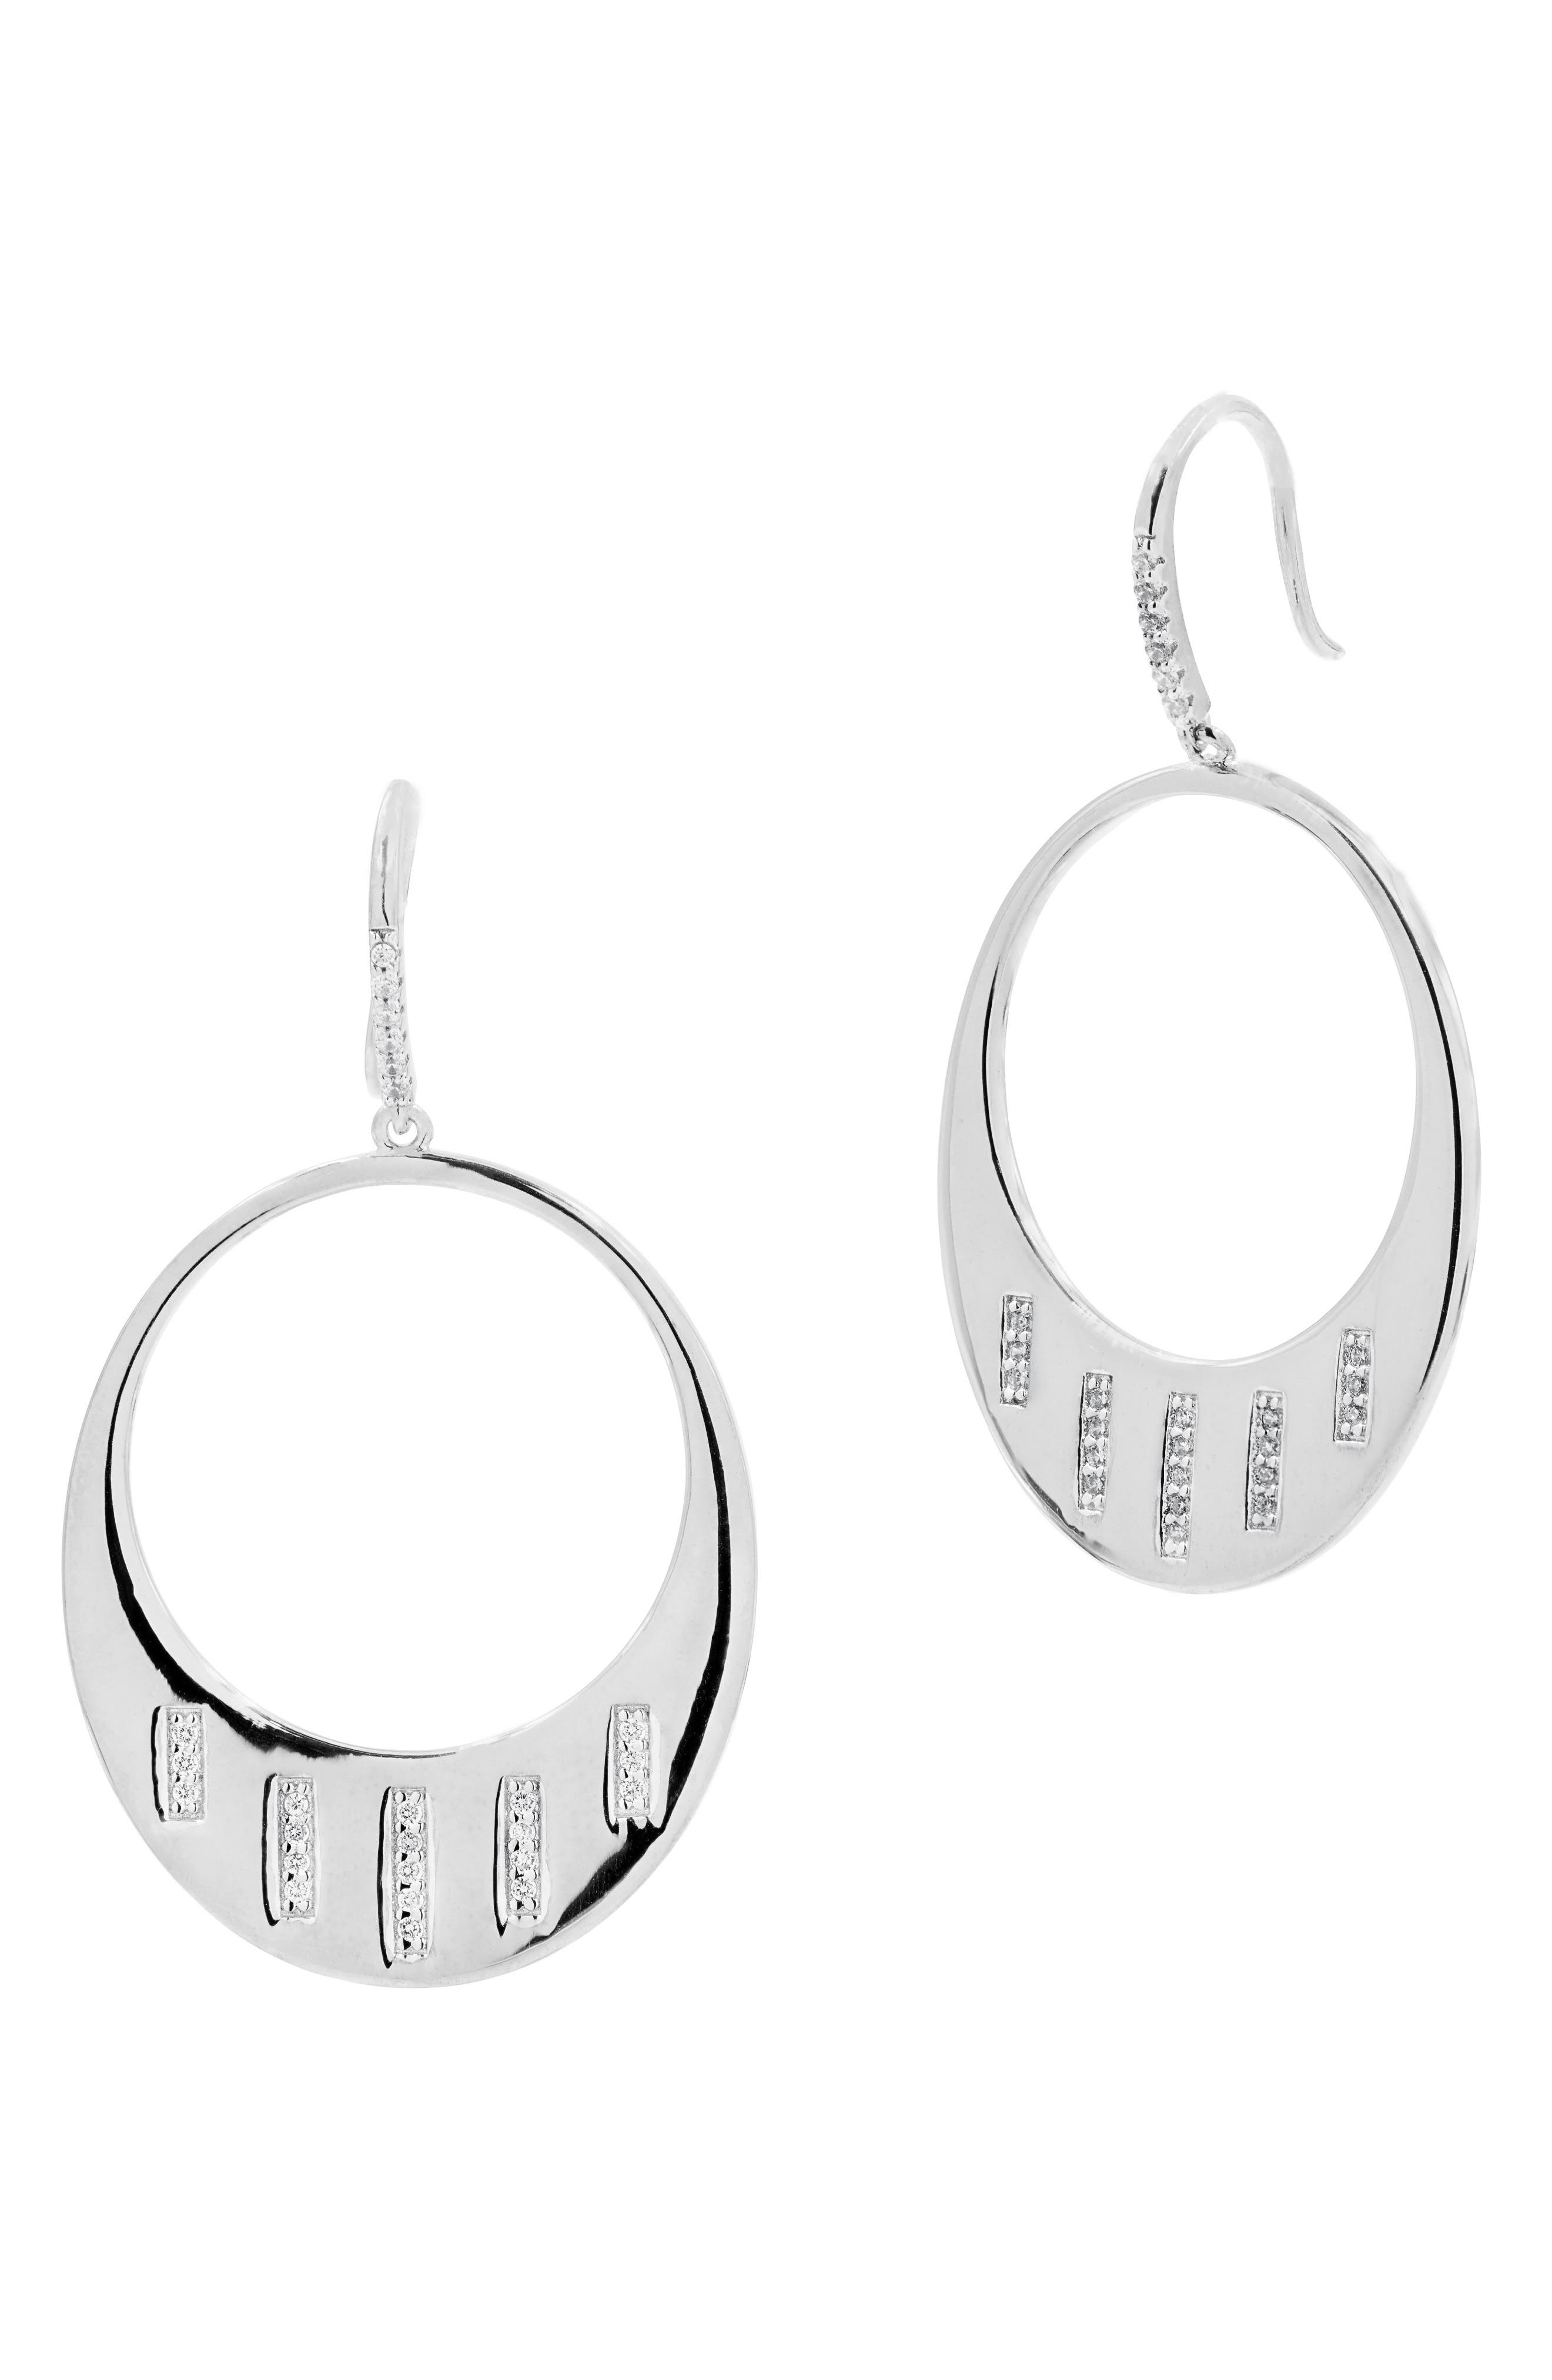 Radiance Cubic Zirconia Drop Earrings,                             Main thumbnail 1, color,                             SILVER